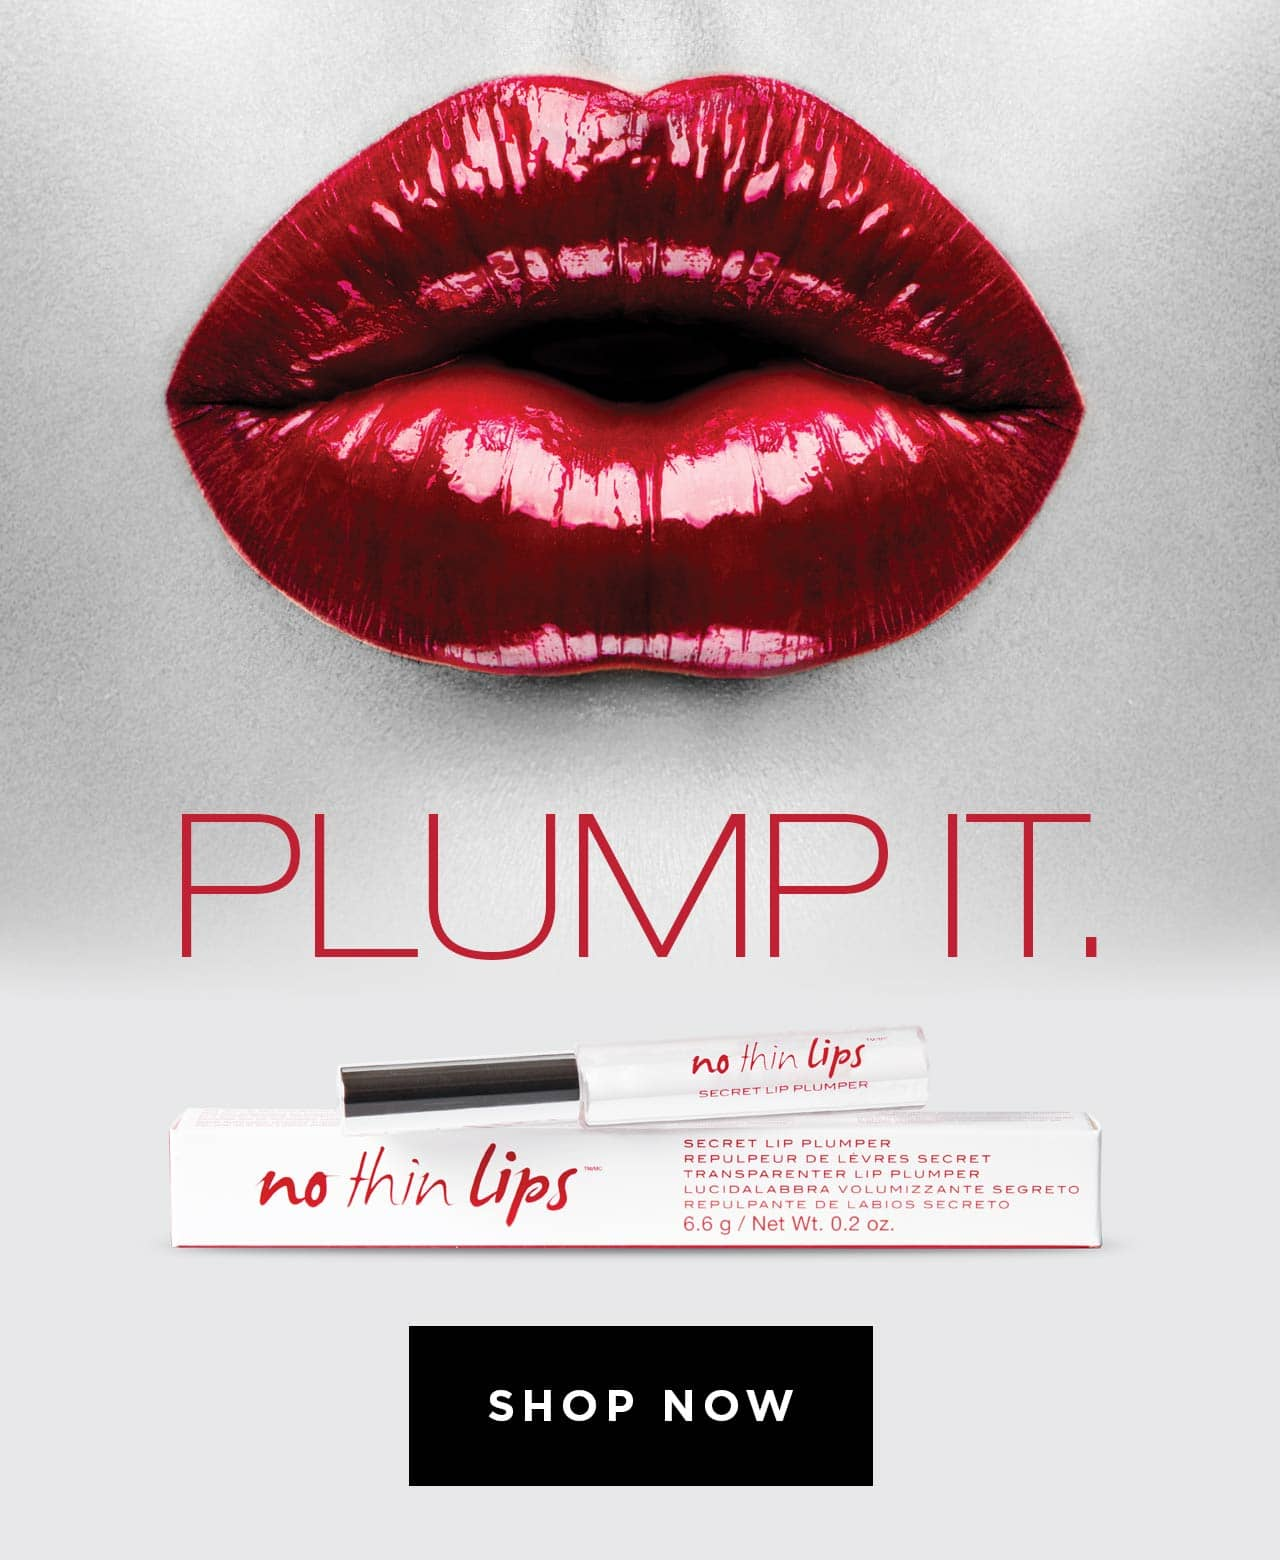 Plump it. Colourless lip plumper that instantly plumps lips for a full lip look